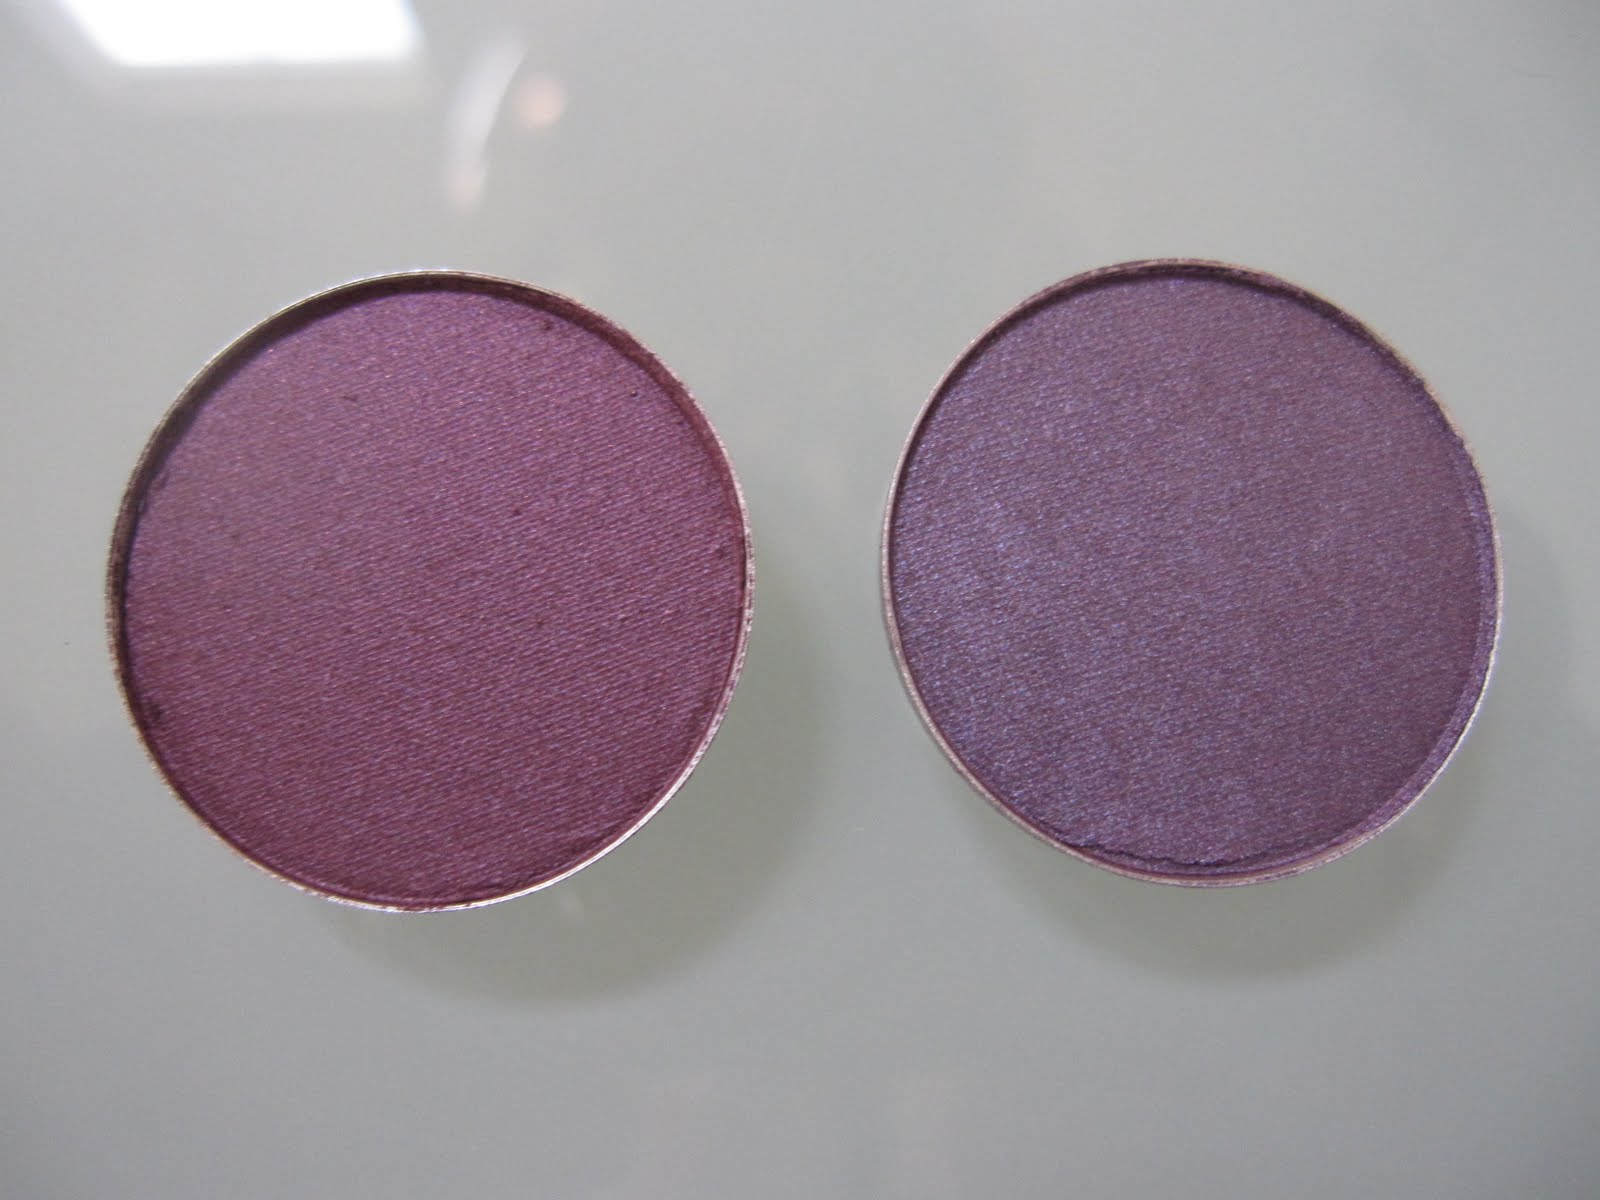 Mac Satellite Dreams Nocturnelle Vs Pictures to Pin on ...